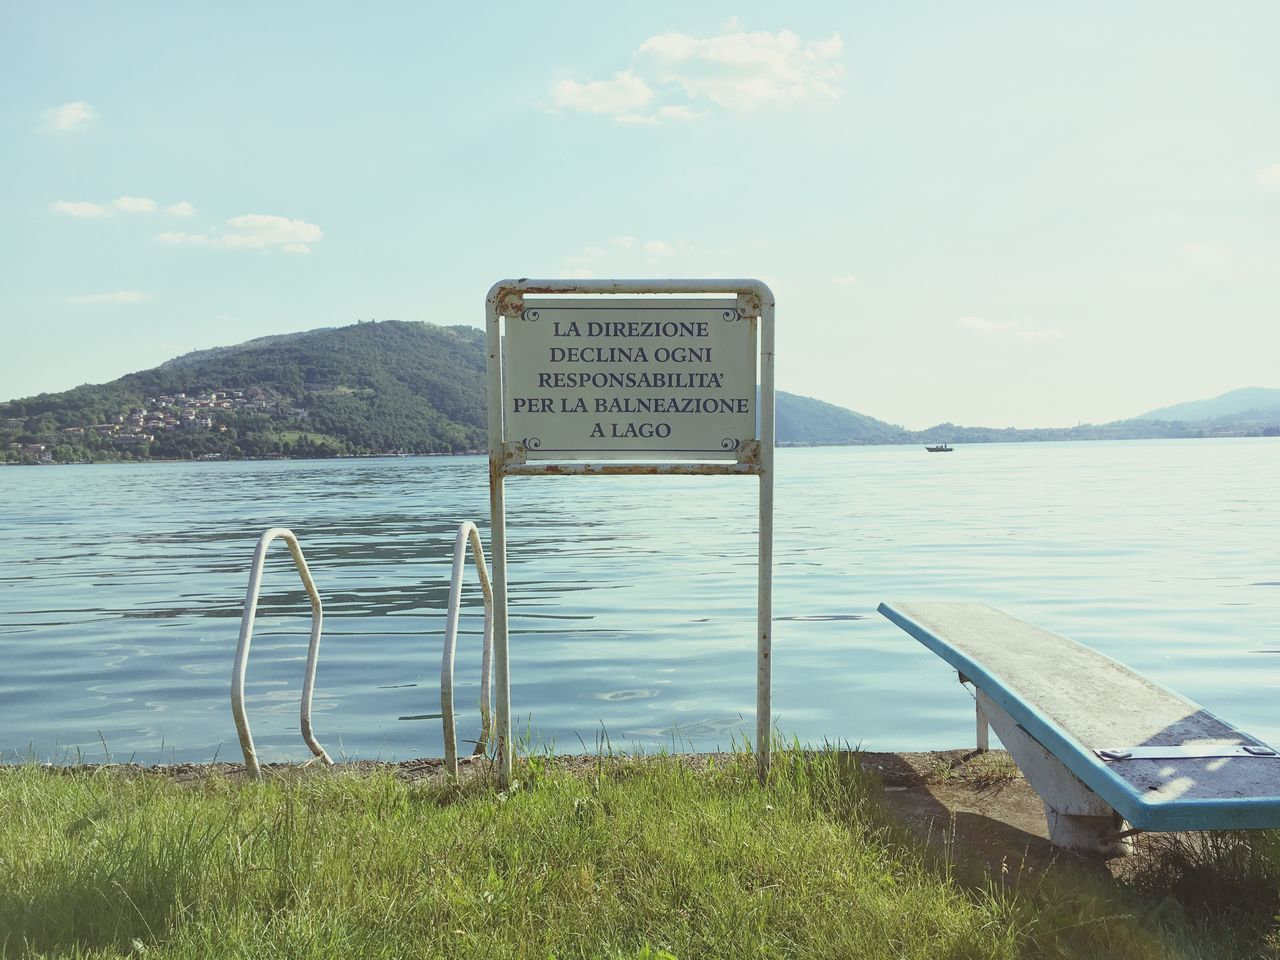 Attenzioni. Text Western Script Communication Water Sea Sky Day Mountain No People Tranquility Outdoors Nature Guidance Signboard Cloud - Sky Scenics Welcome Sign Grass Beauty In Nature Warning Sign Lake Italian